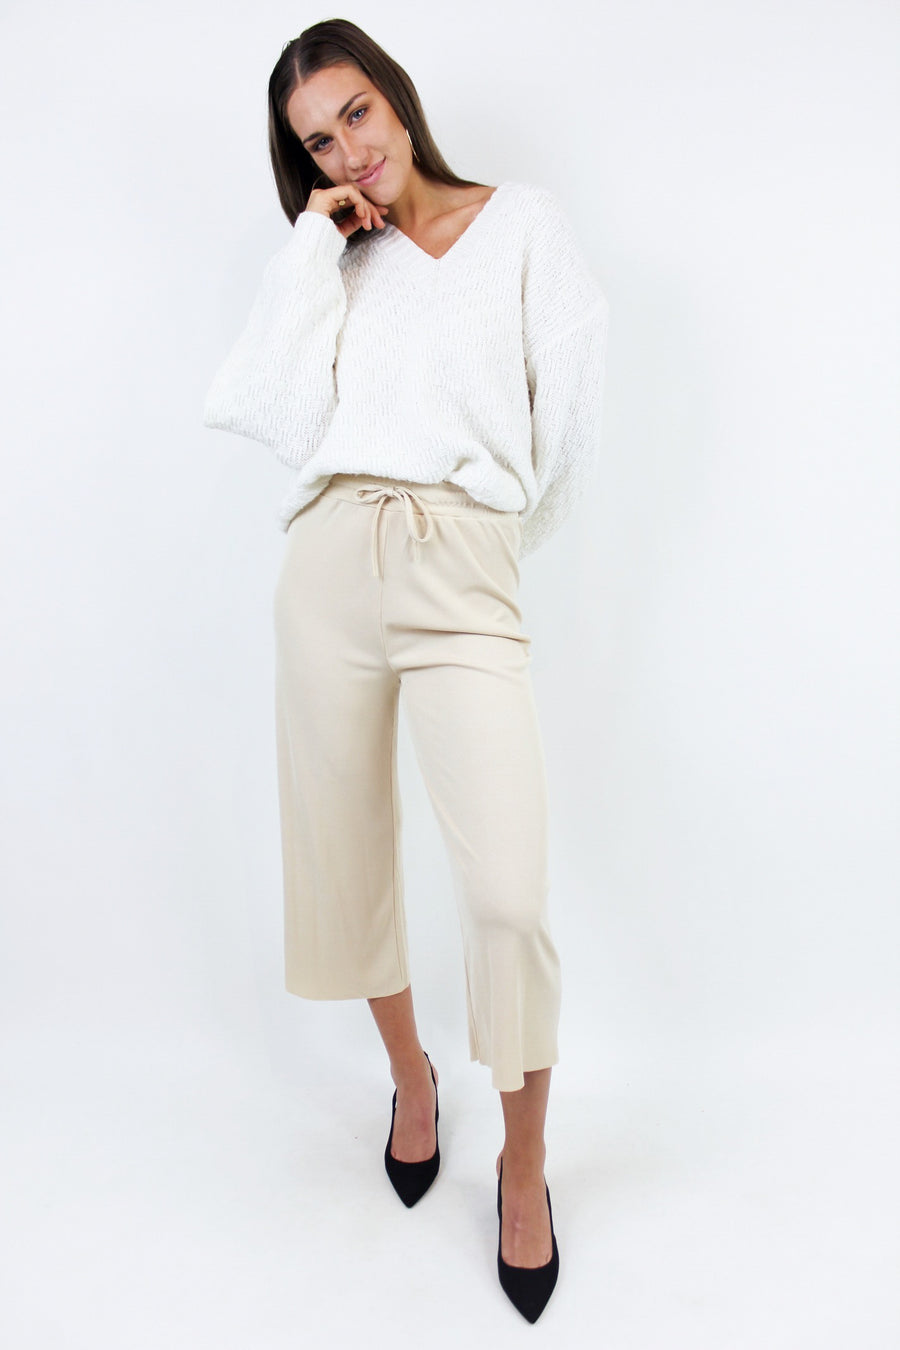 DRIFT AWAY RIBBED PANTS / CREAM - Halite Clothing